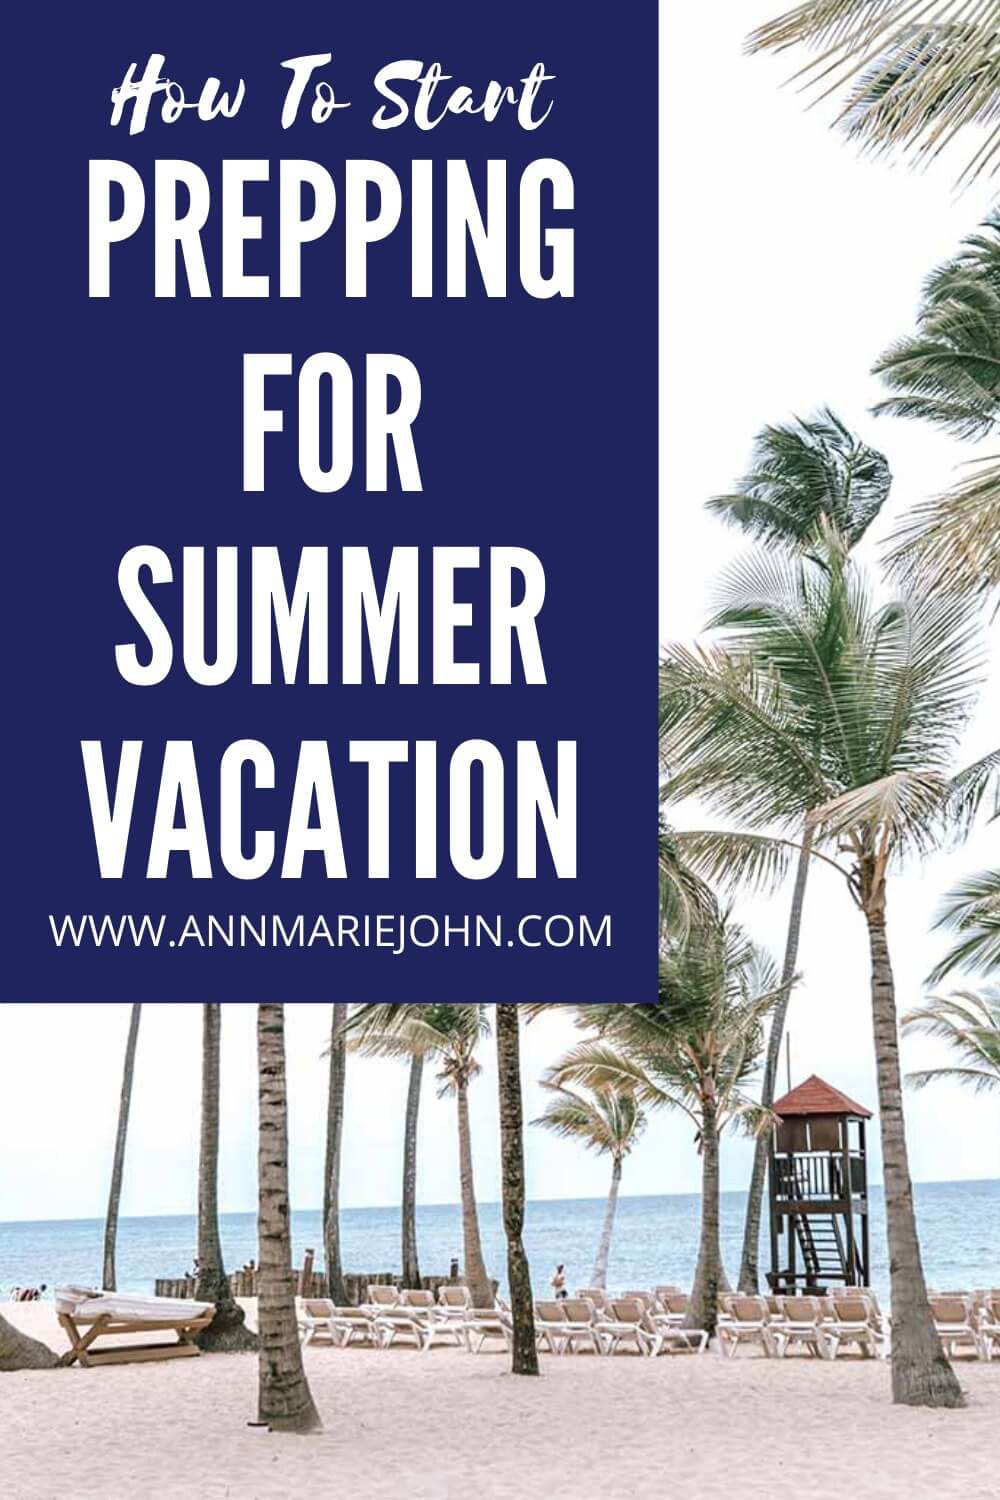 How to Start Prepping for Summer Vacation Pin